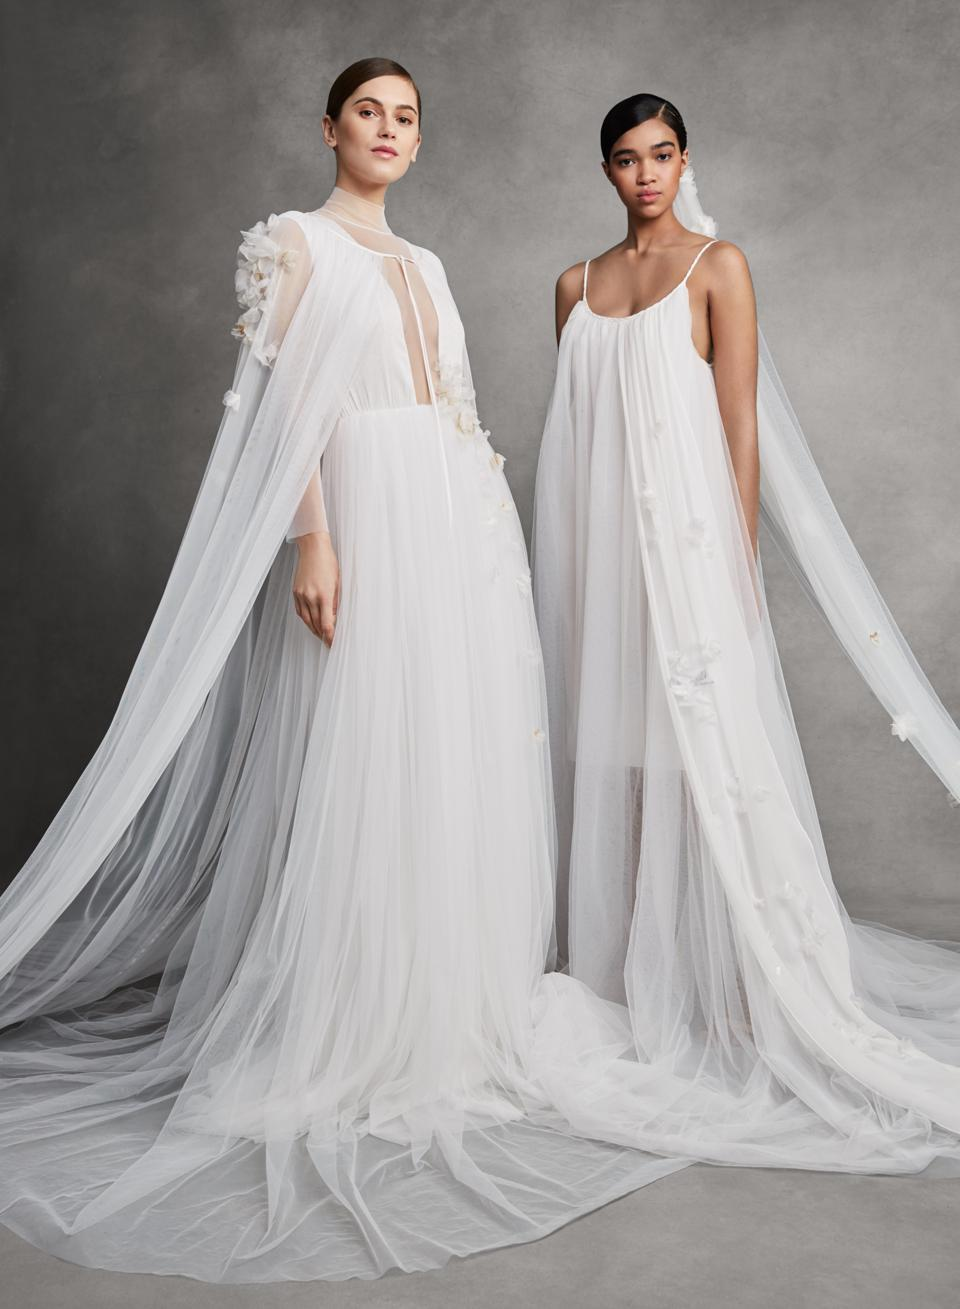 two models in white bridal gowns designed by Parsons School of Design graduate Andrew Kwon